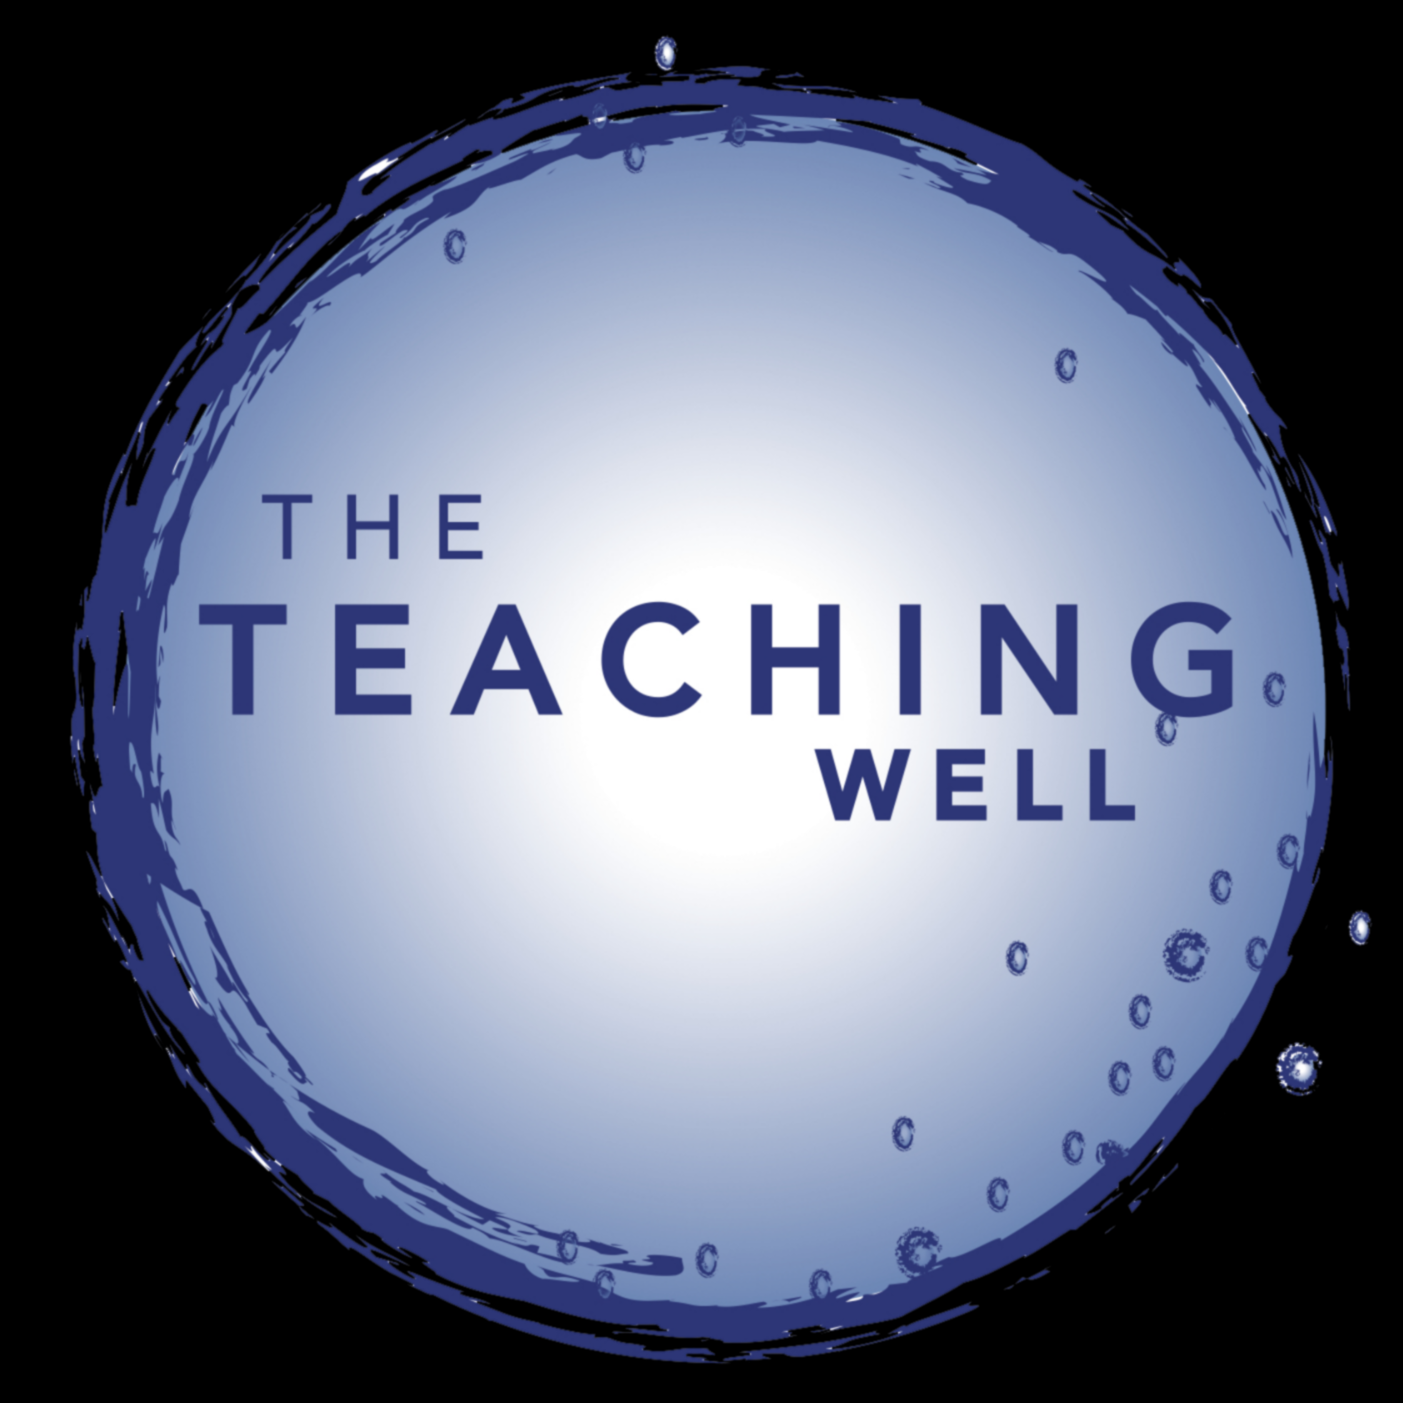 The Teaching Well